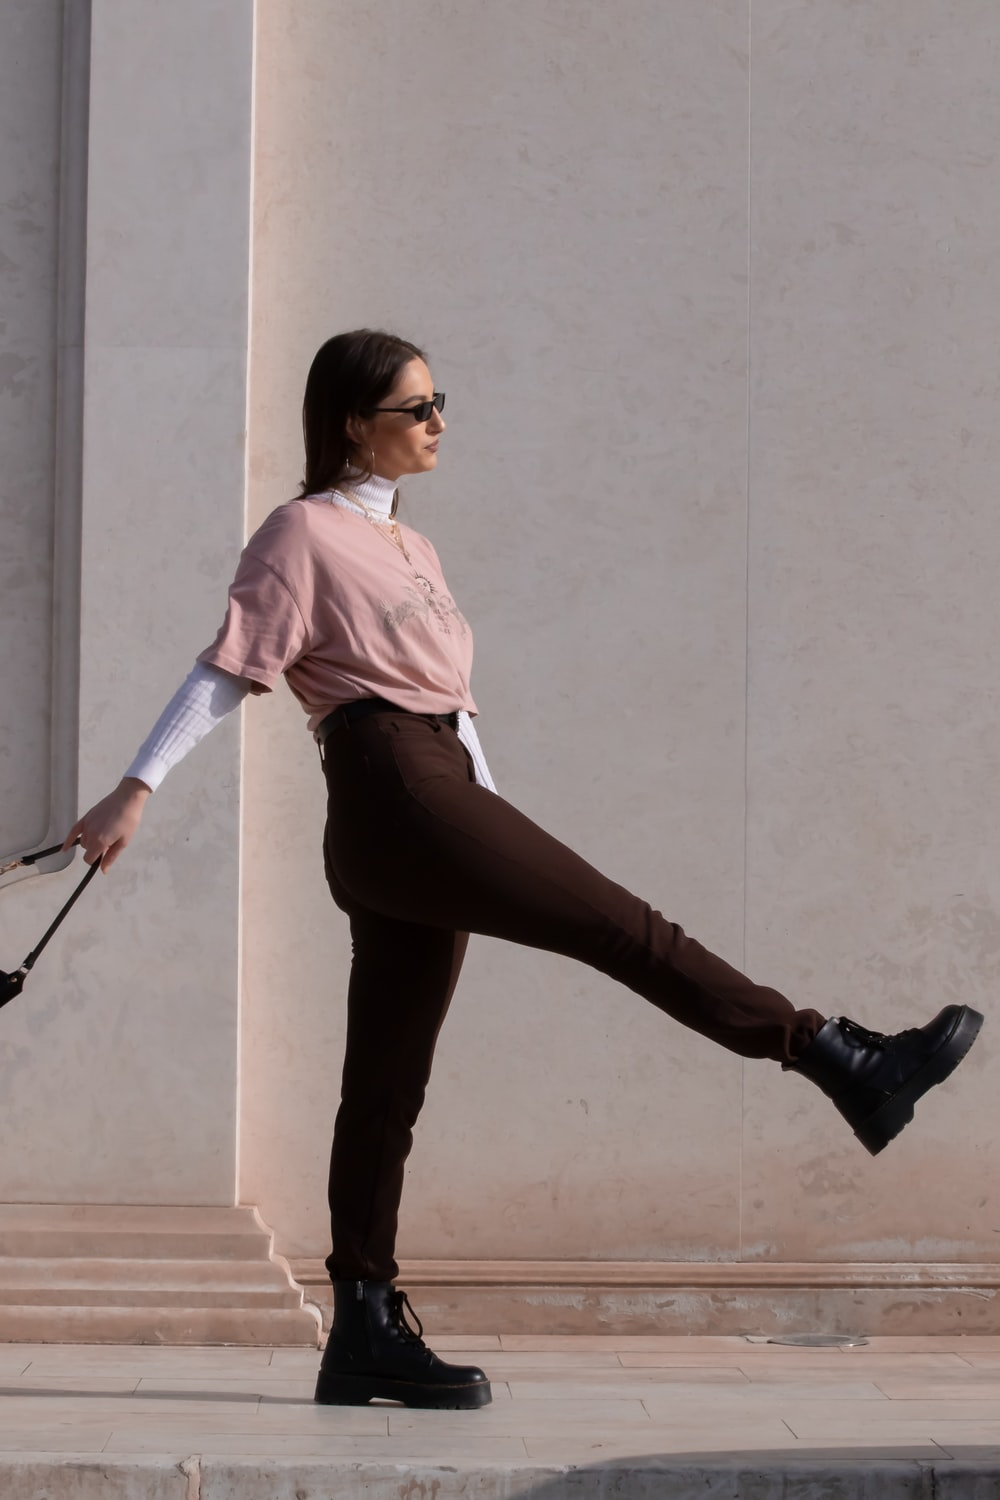 woman in pink shirt and black pants holding walking stick